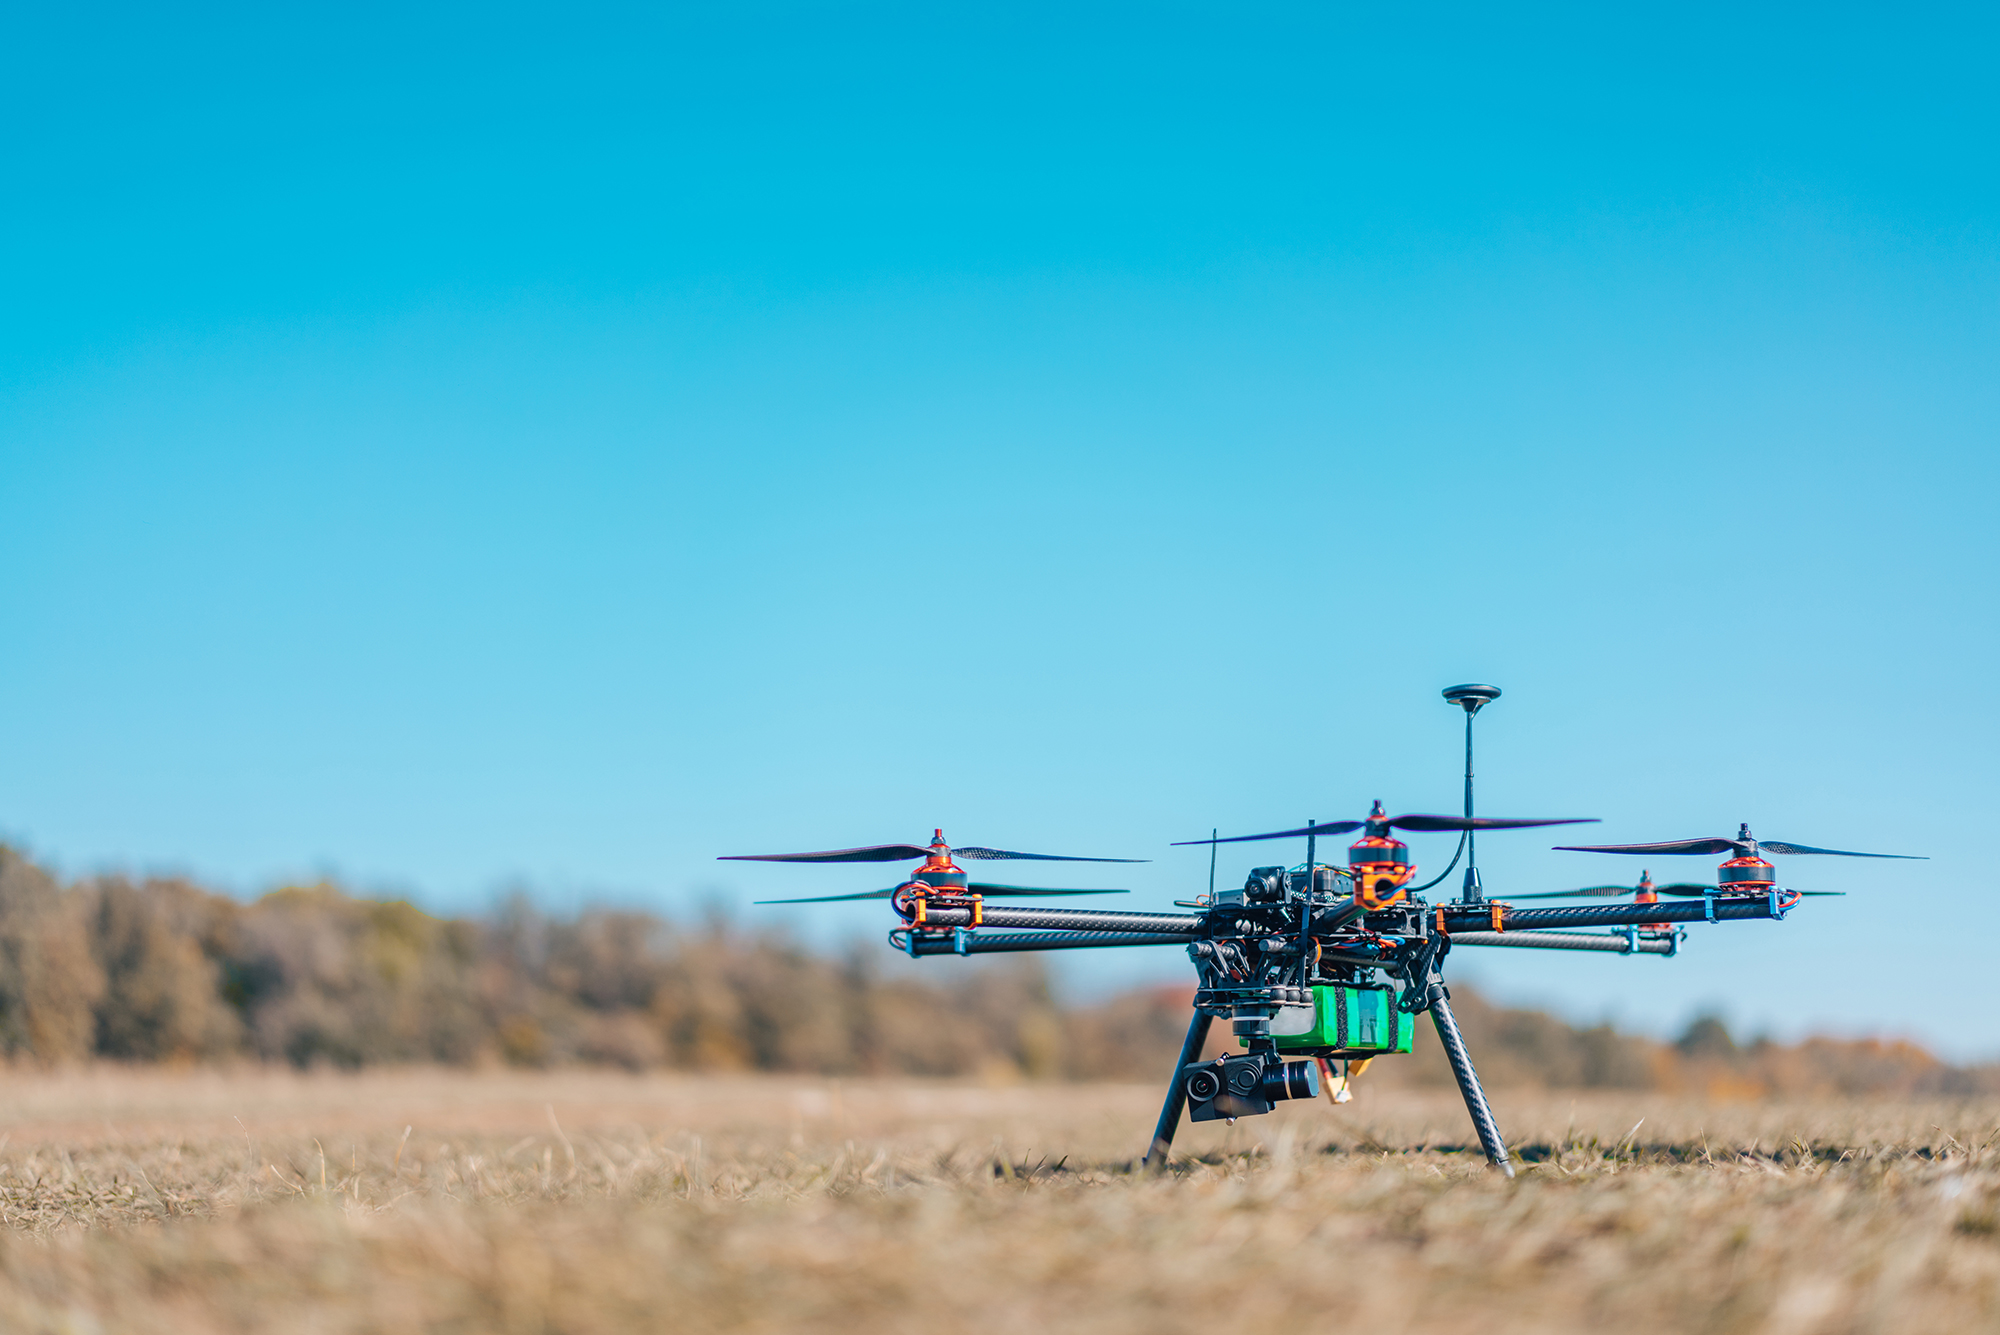 Try-to-land-the-drone-as-soon-as-it-is-safe